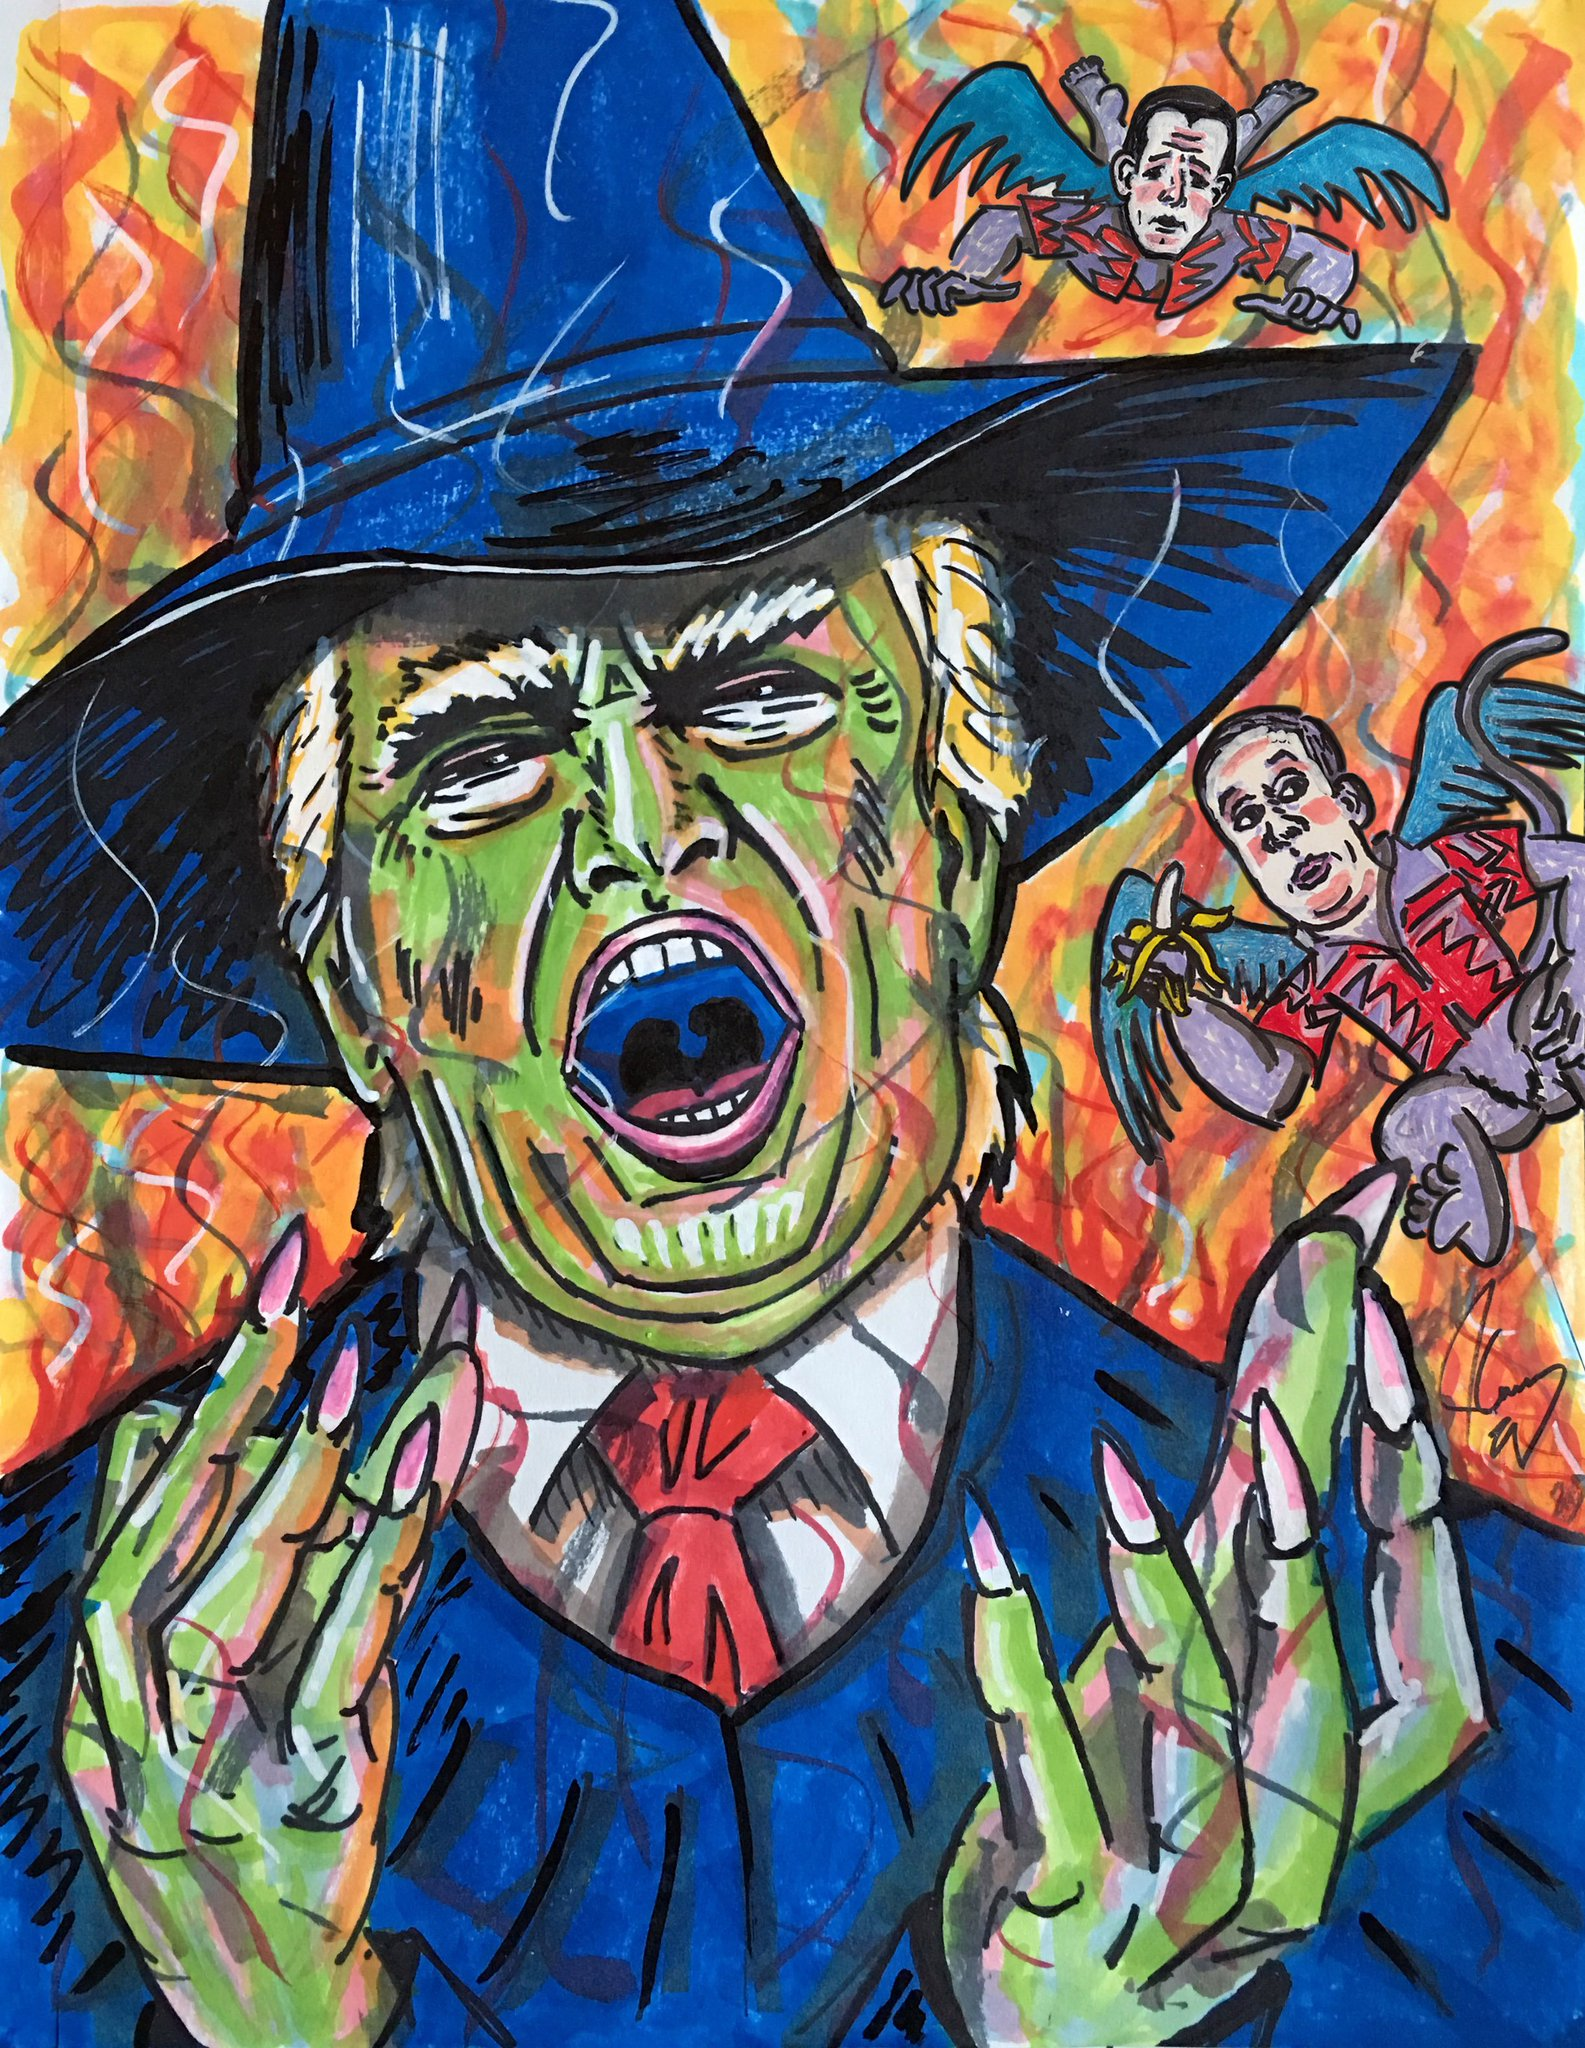 "If you liked my last cartoon you may also enjoy...  ""THE WICKED WITCH OF THE WEST WING AND PUTIN'S FLYING MONKEYS"" https://t.co/slBG7j1s8d"